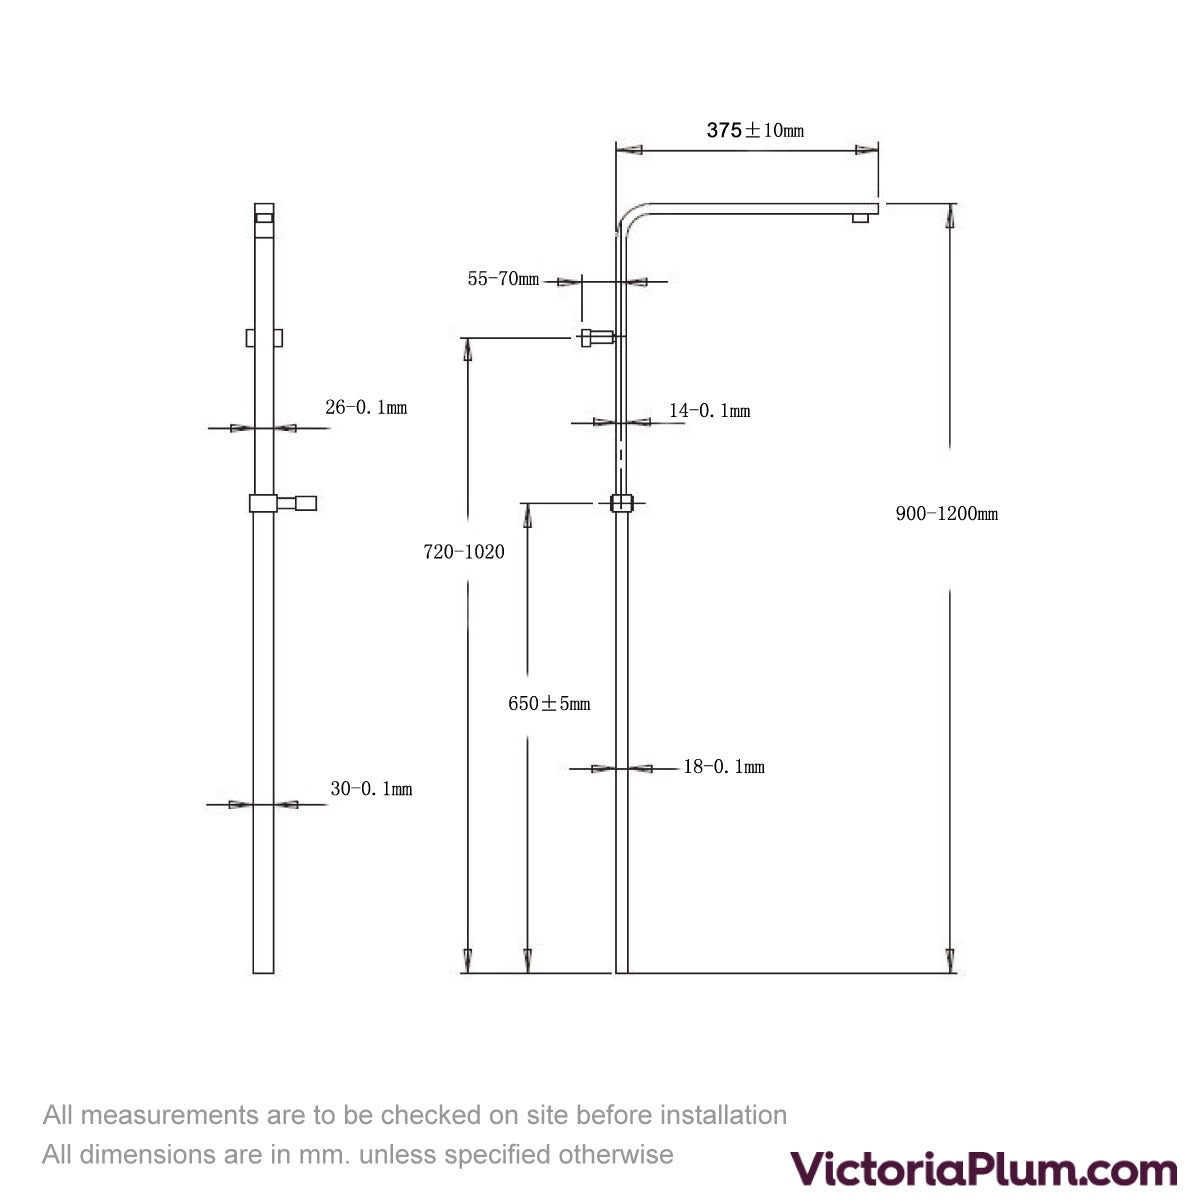 Dimensions for Orchard Wye thermostatic bar valve shower system